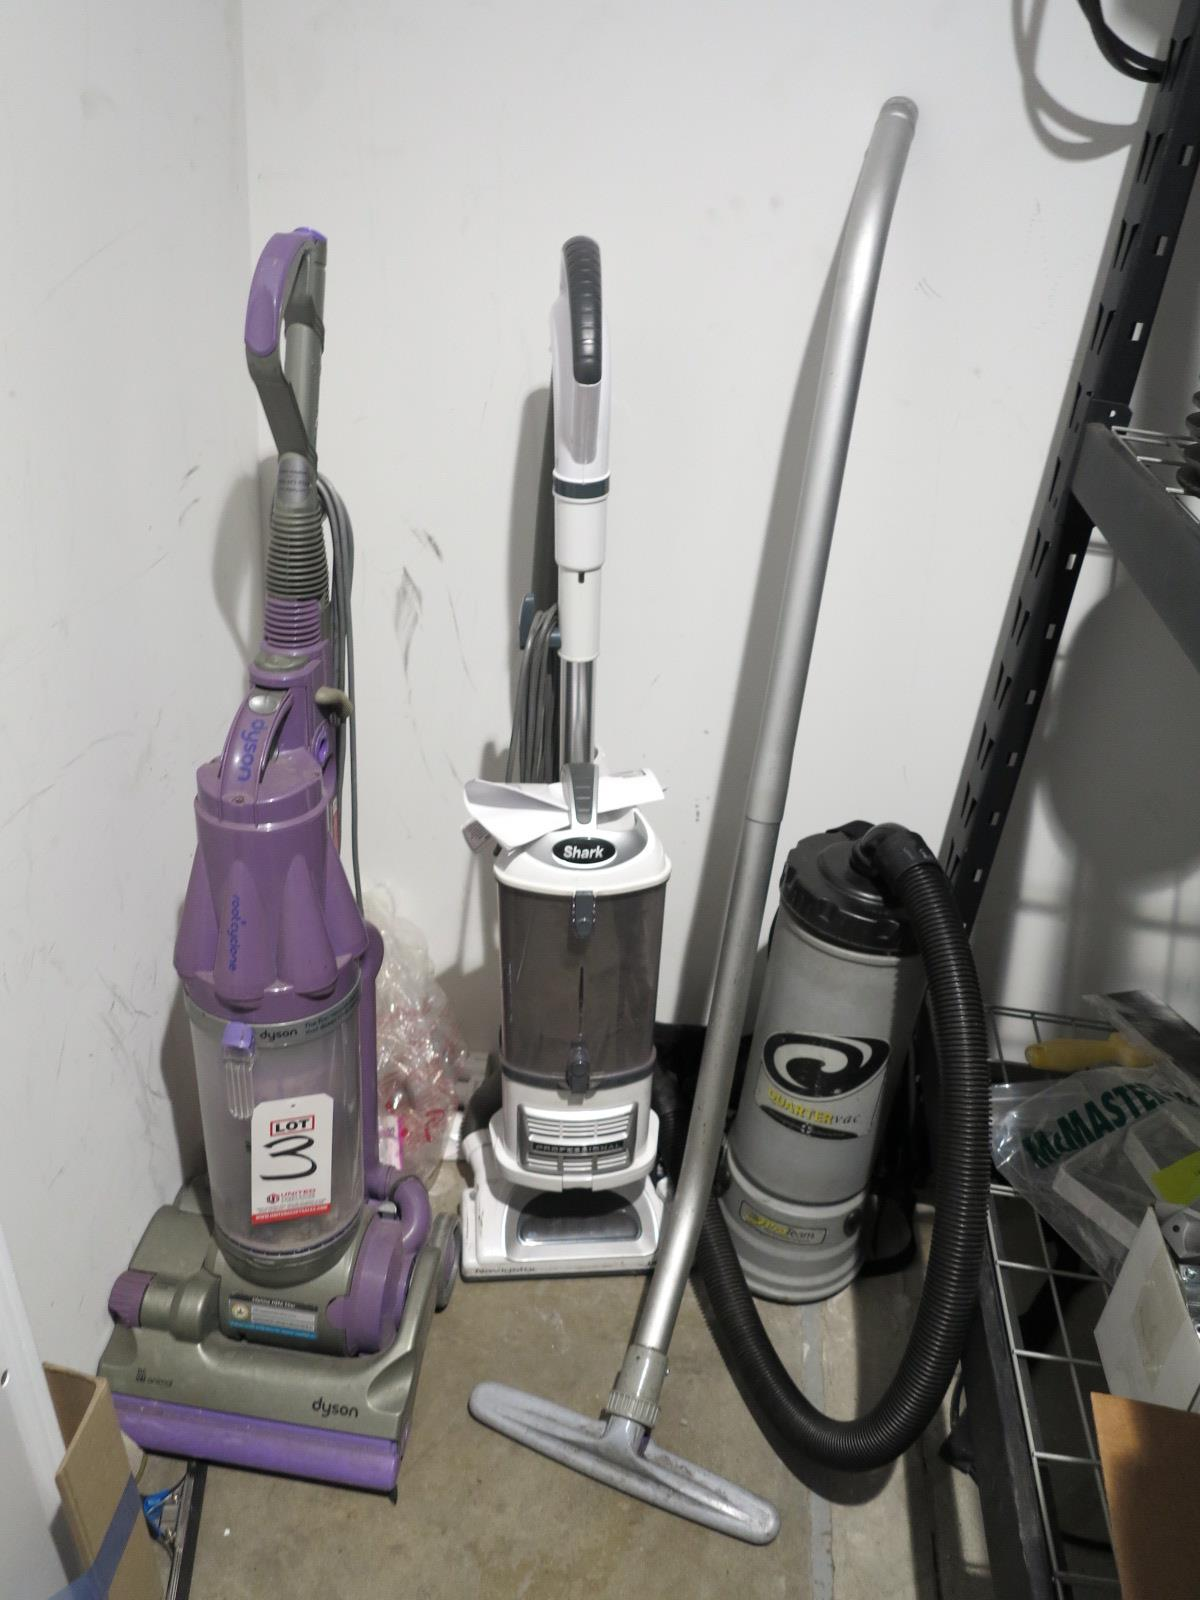 Lot 3 - LOT - (3) VACUUM CLEANERS: PROTEAM QUARTER VAC BACKPACK VAC; DYSON ROOT CYCLONE; SHARK NV355